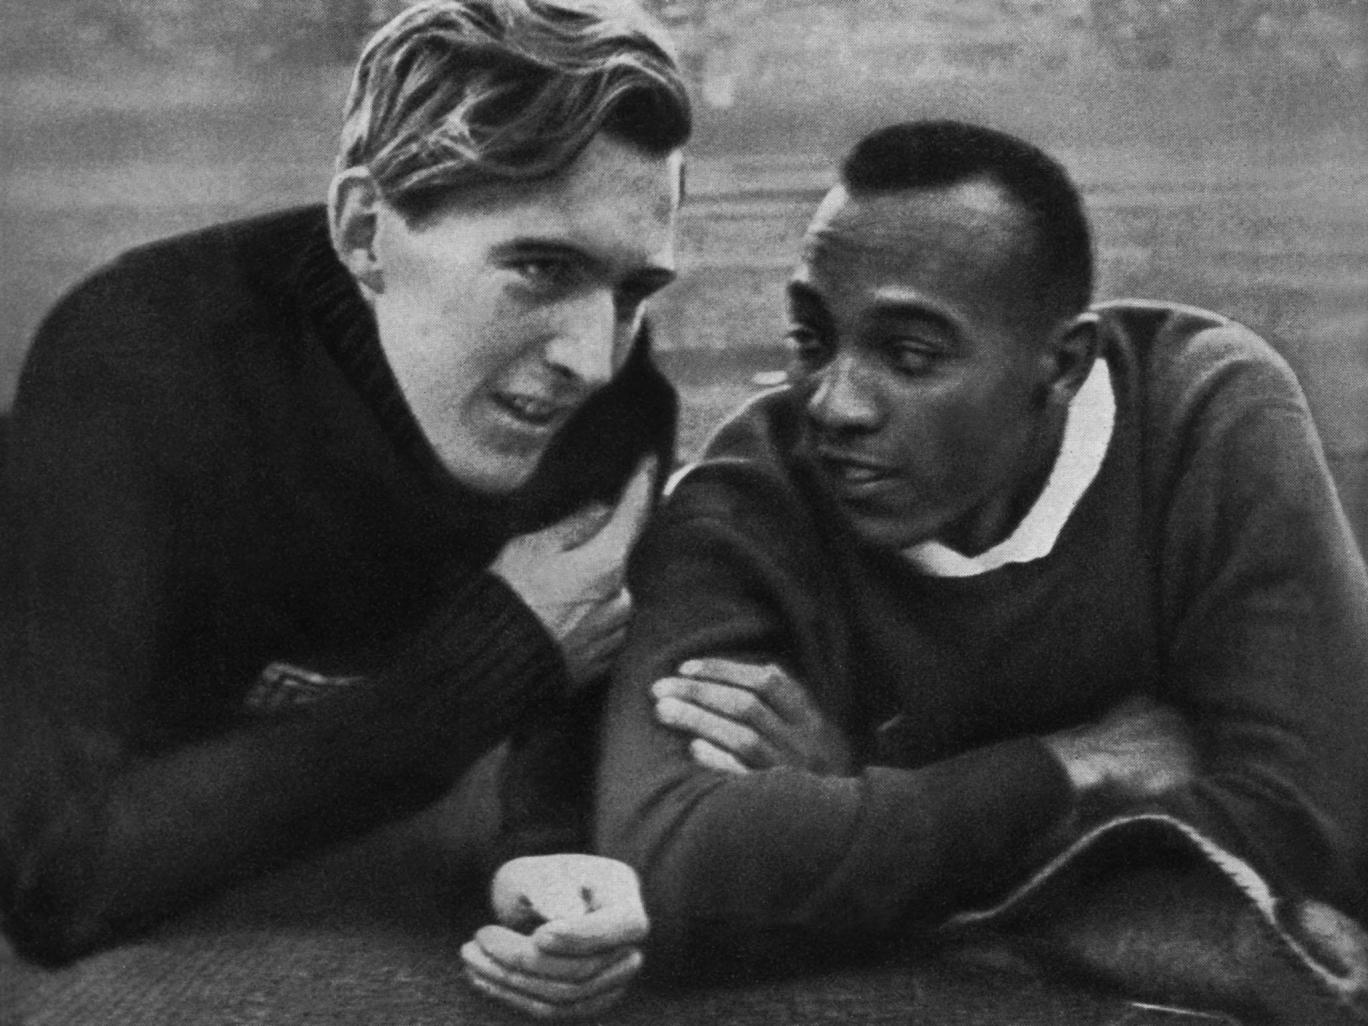 luz-long-and-jesse-owens